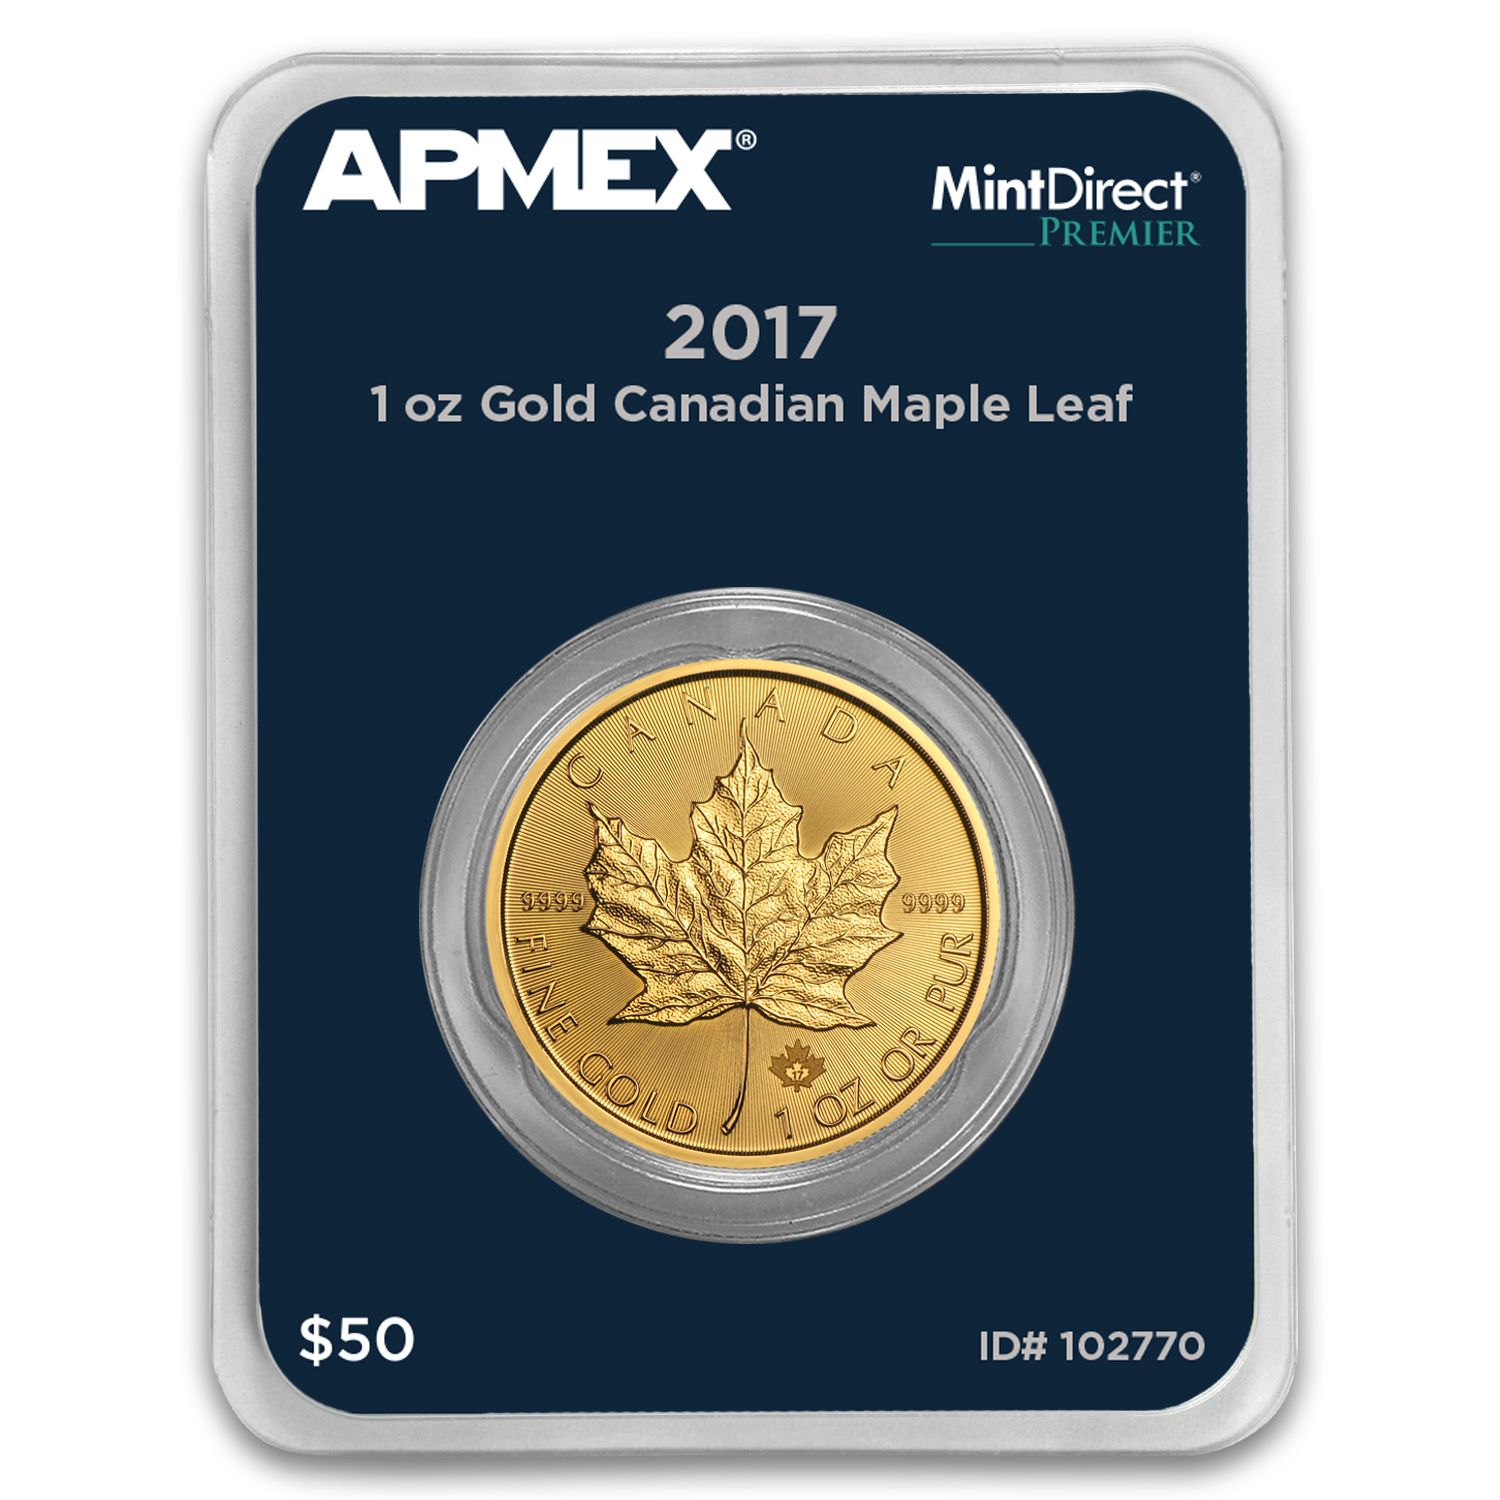 2017 Canada 1 oz Gold Maple Leaf (MintDirect® Premier Single)